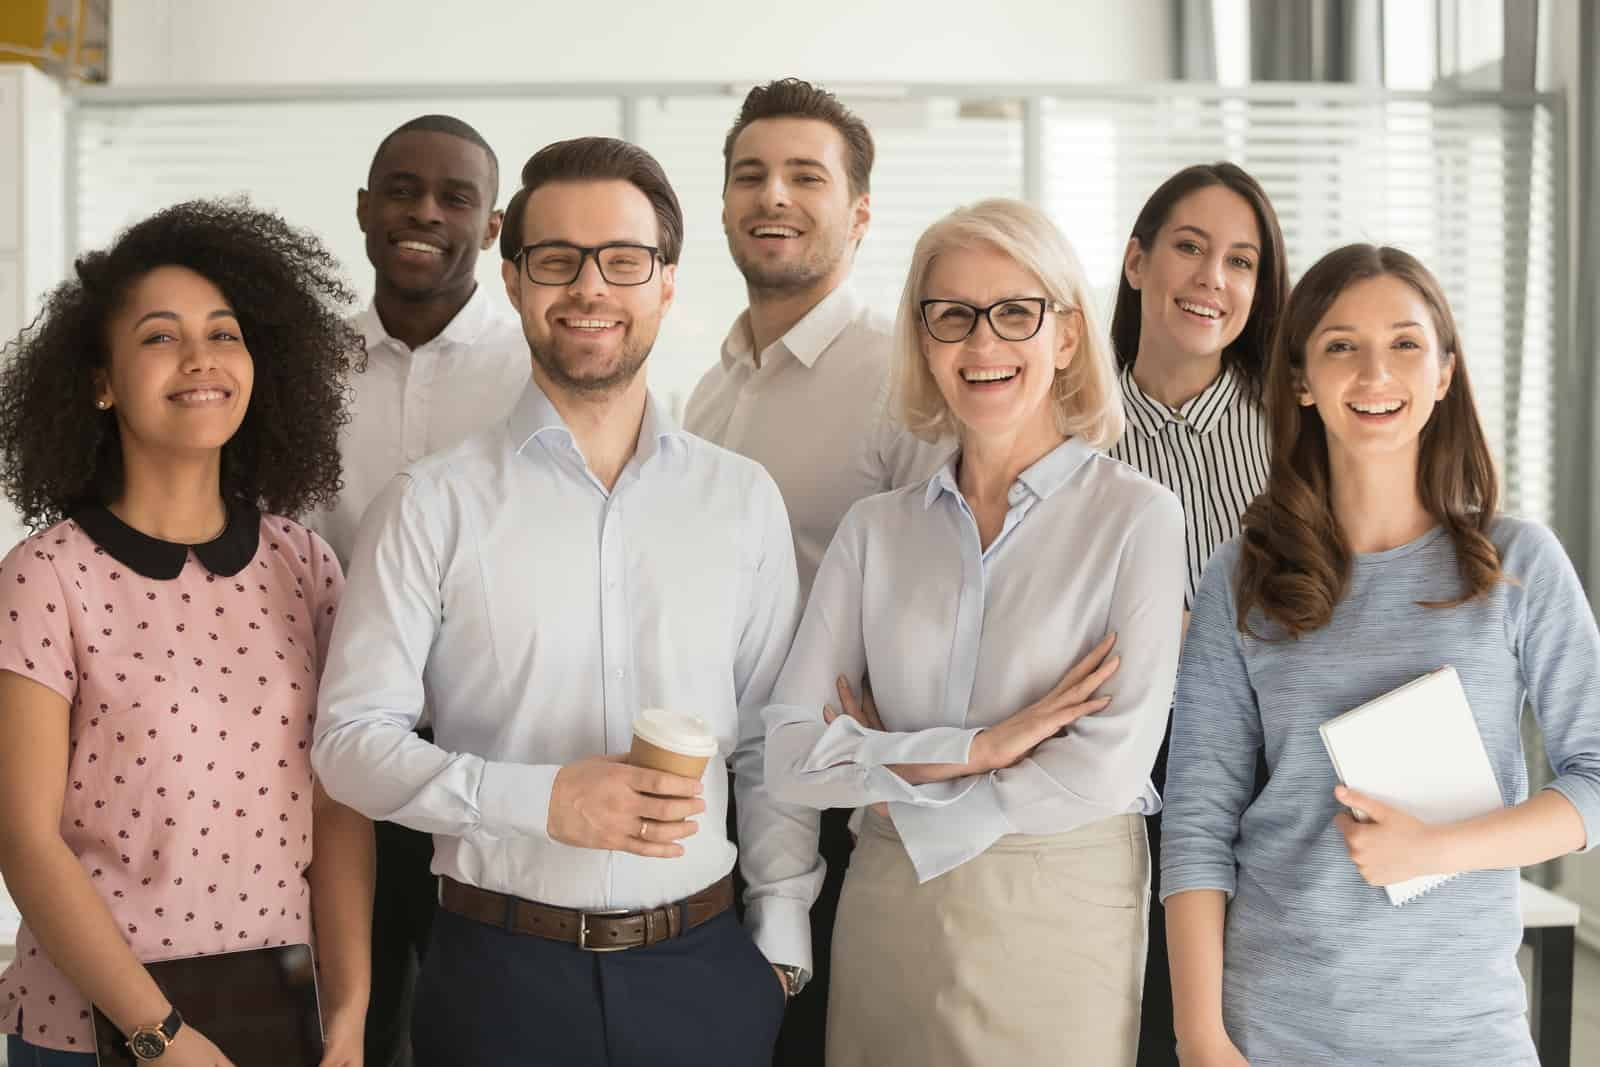 Smiling diverse appraisal team standing looking at camera making team picture in office together